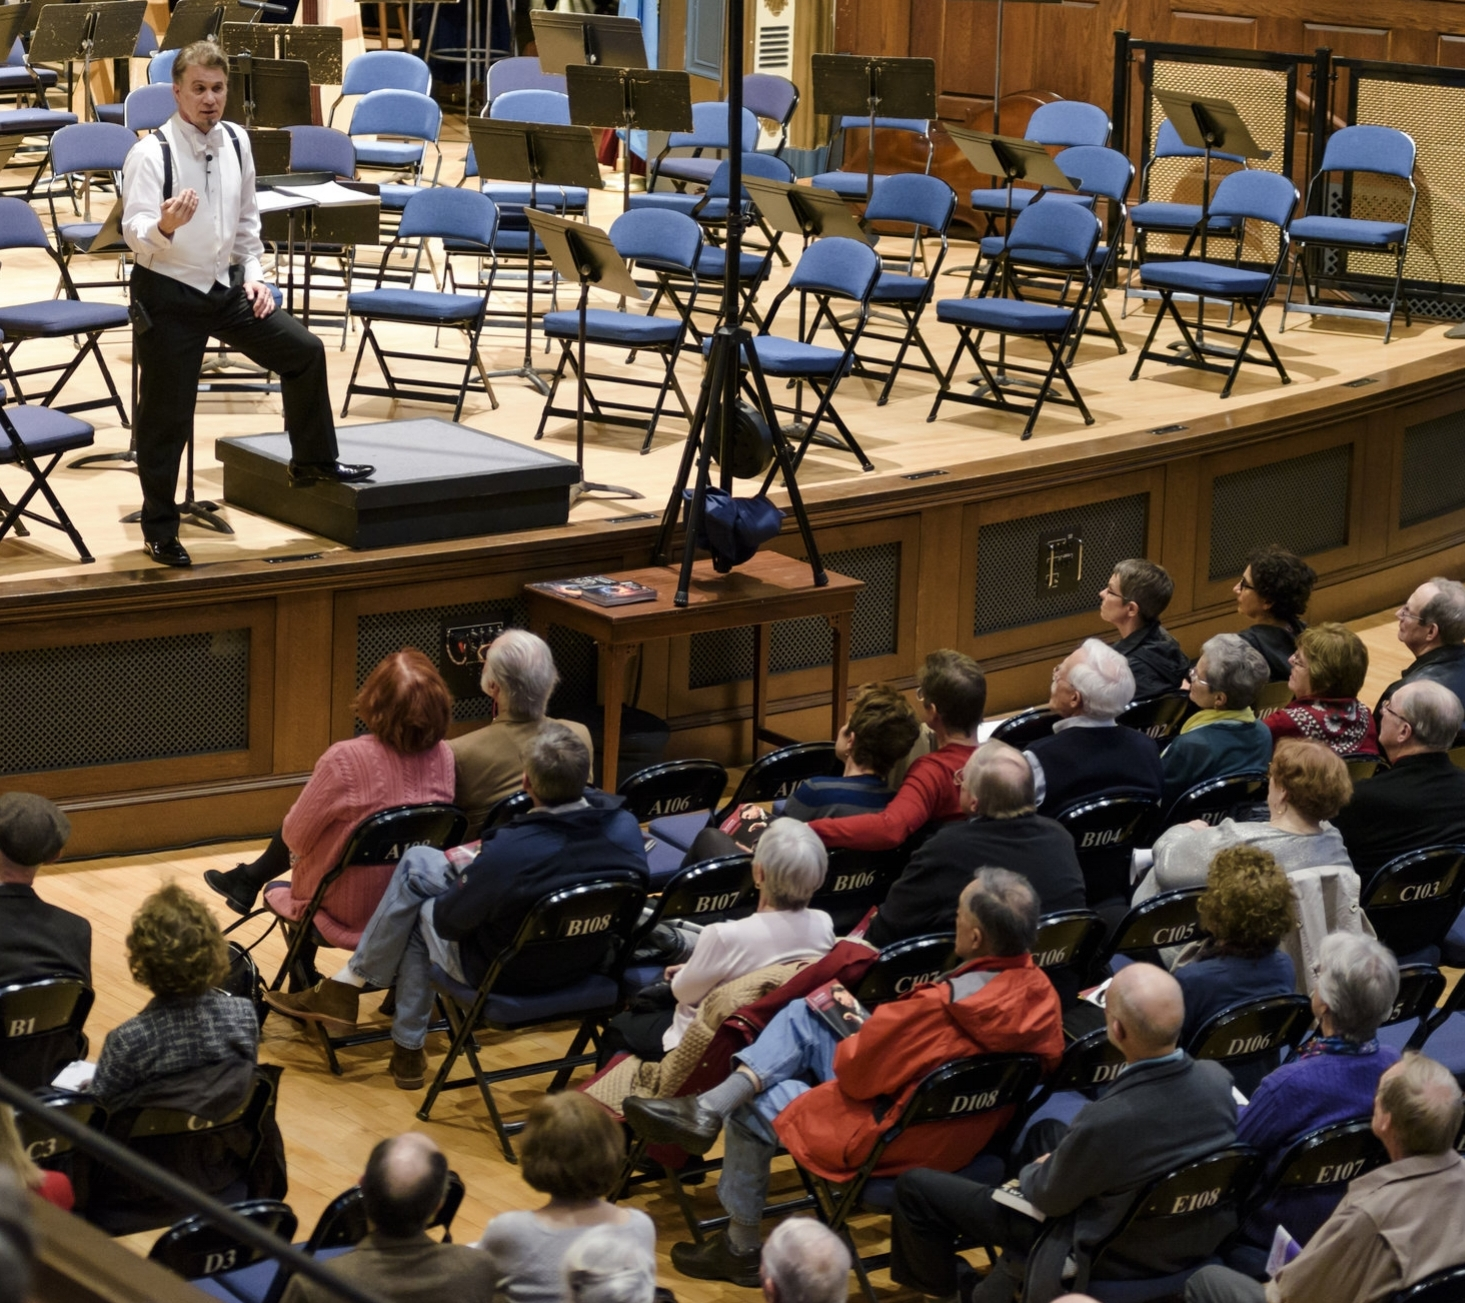 McPhee engaging with audience members during a pre-concert Conductor's Talk.